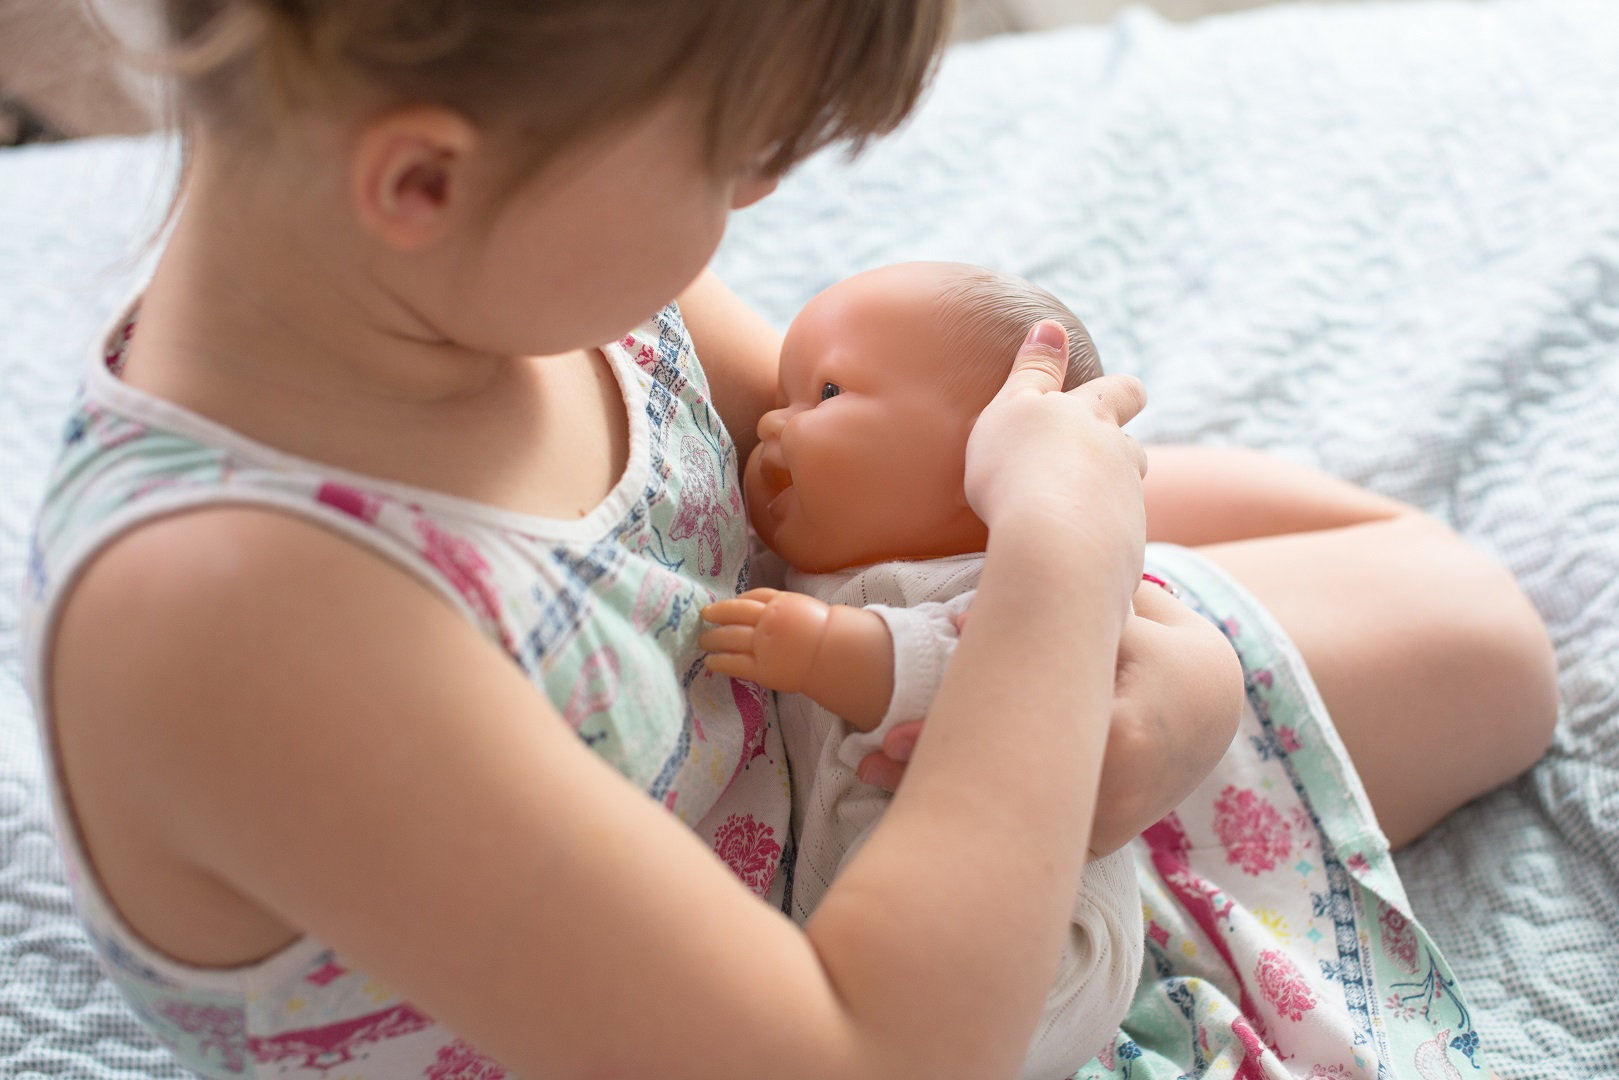 Young Girl Pretend Breastfeeding Baby Doll